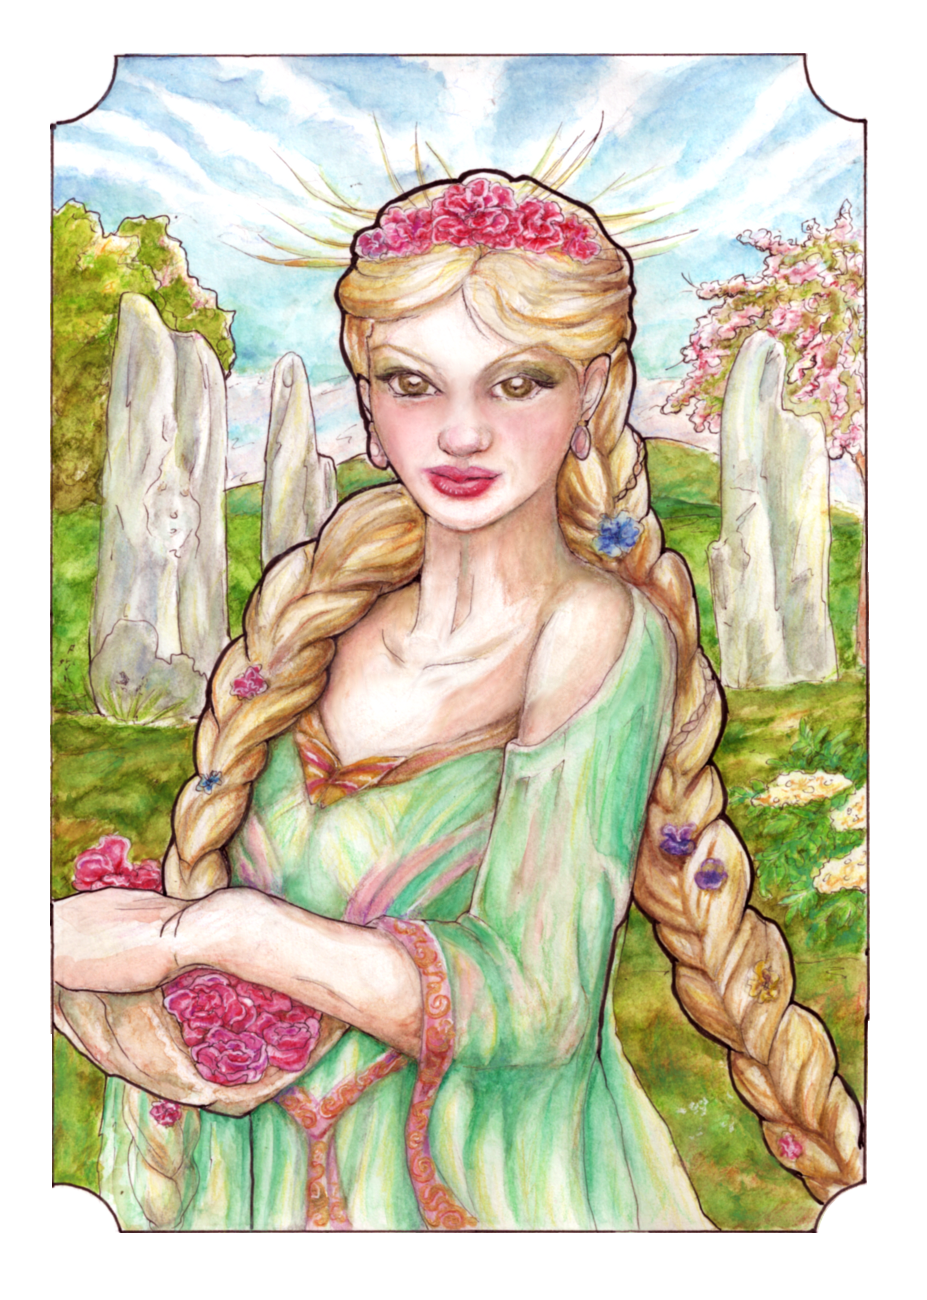 Guinevere, the May Queen by Verbeley